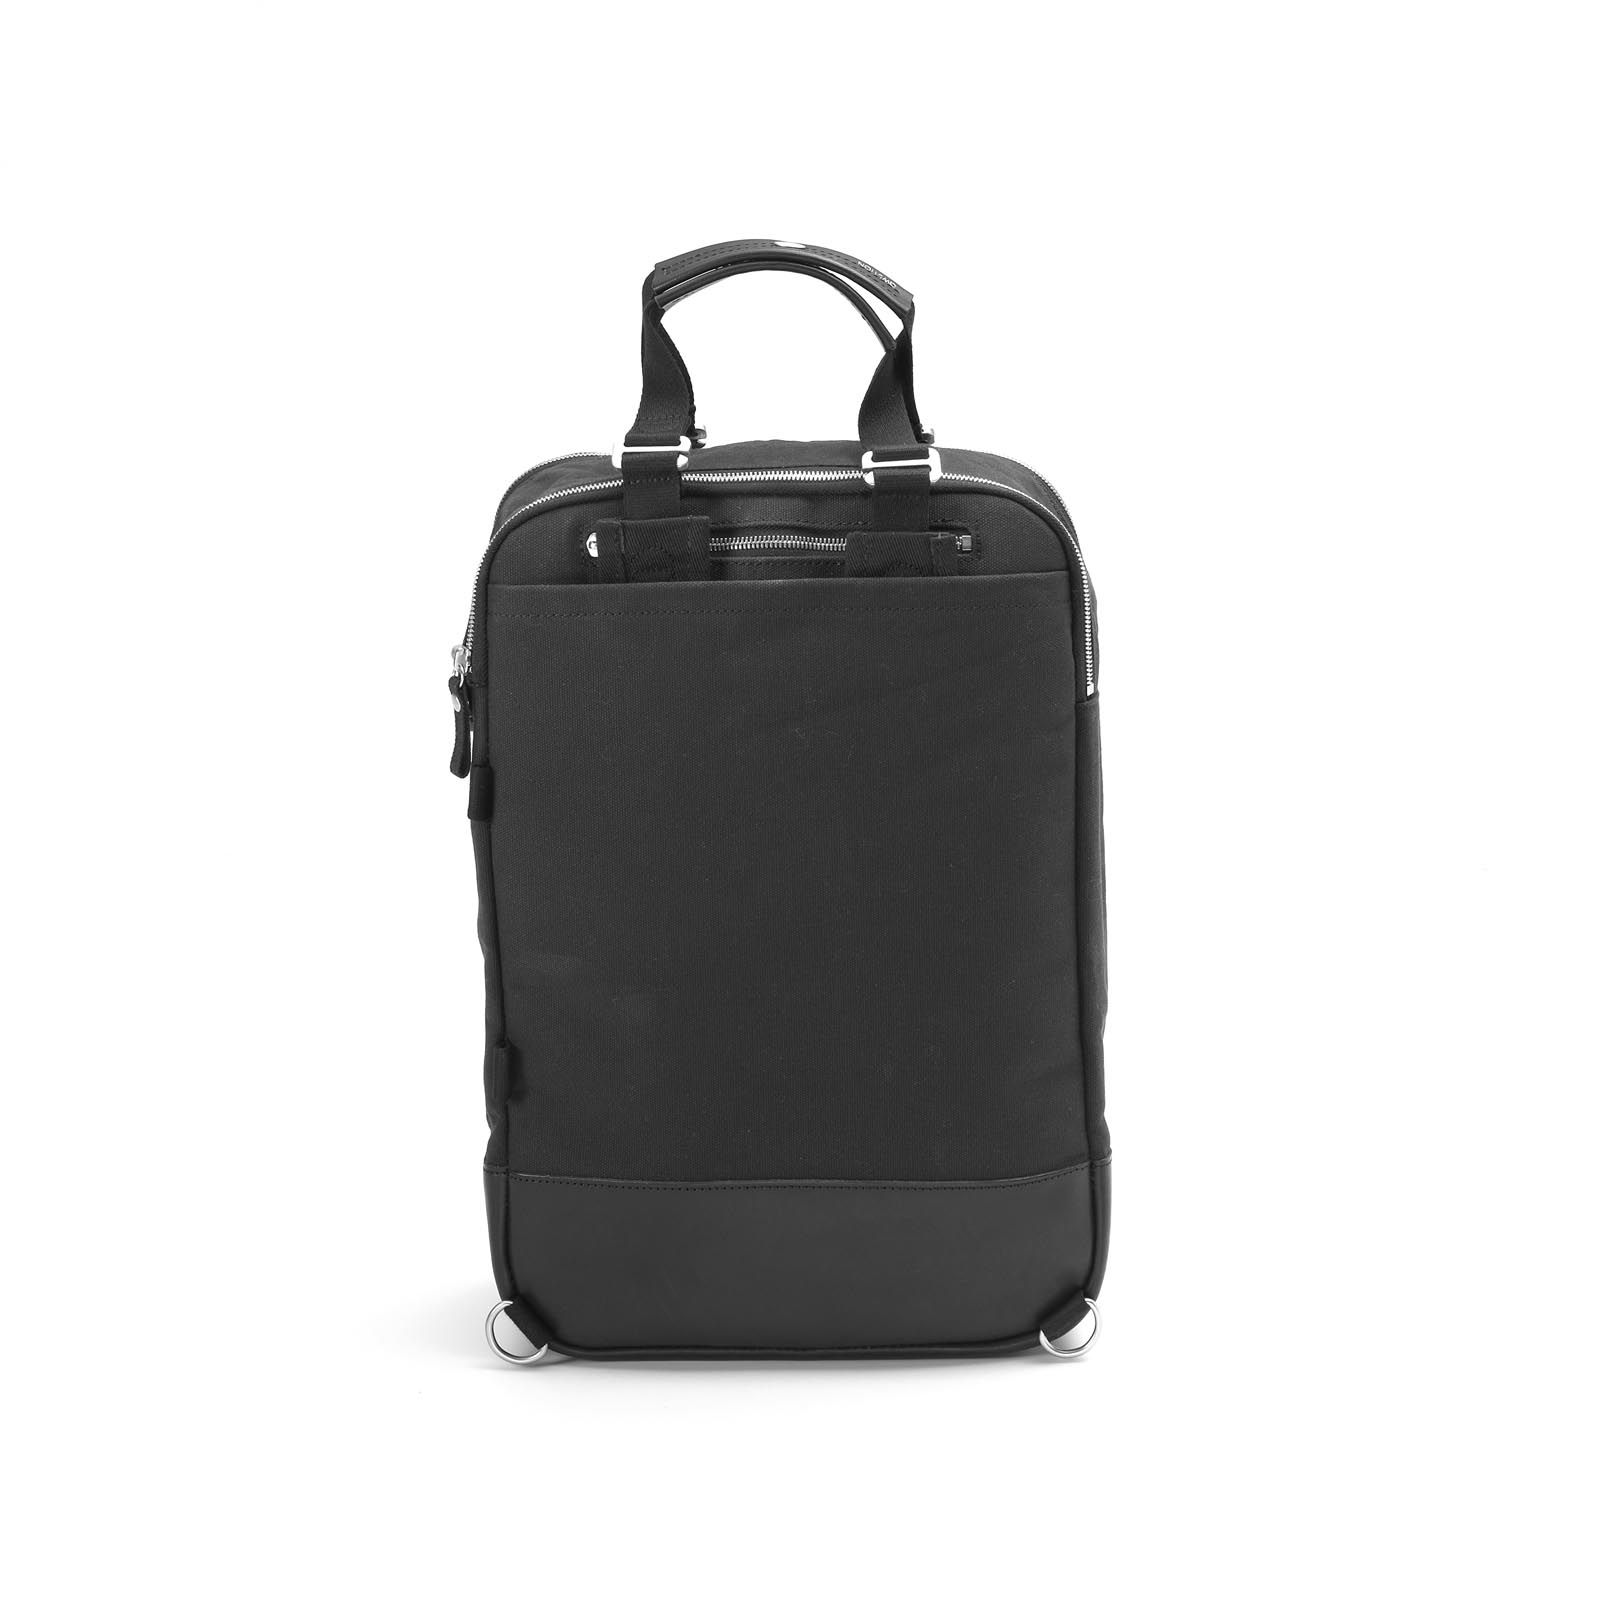 Daypack - Black Leather Canvas